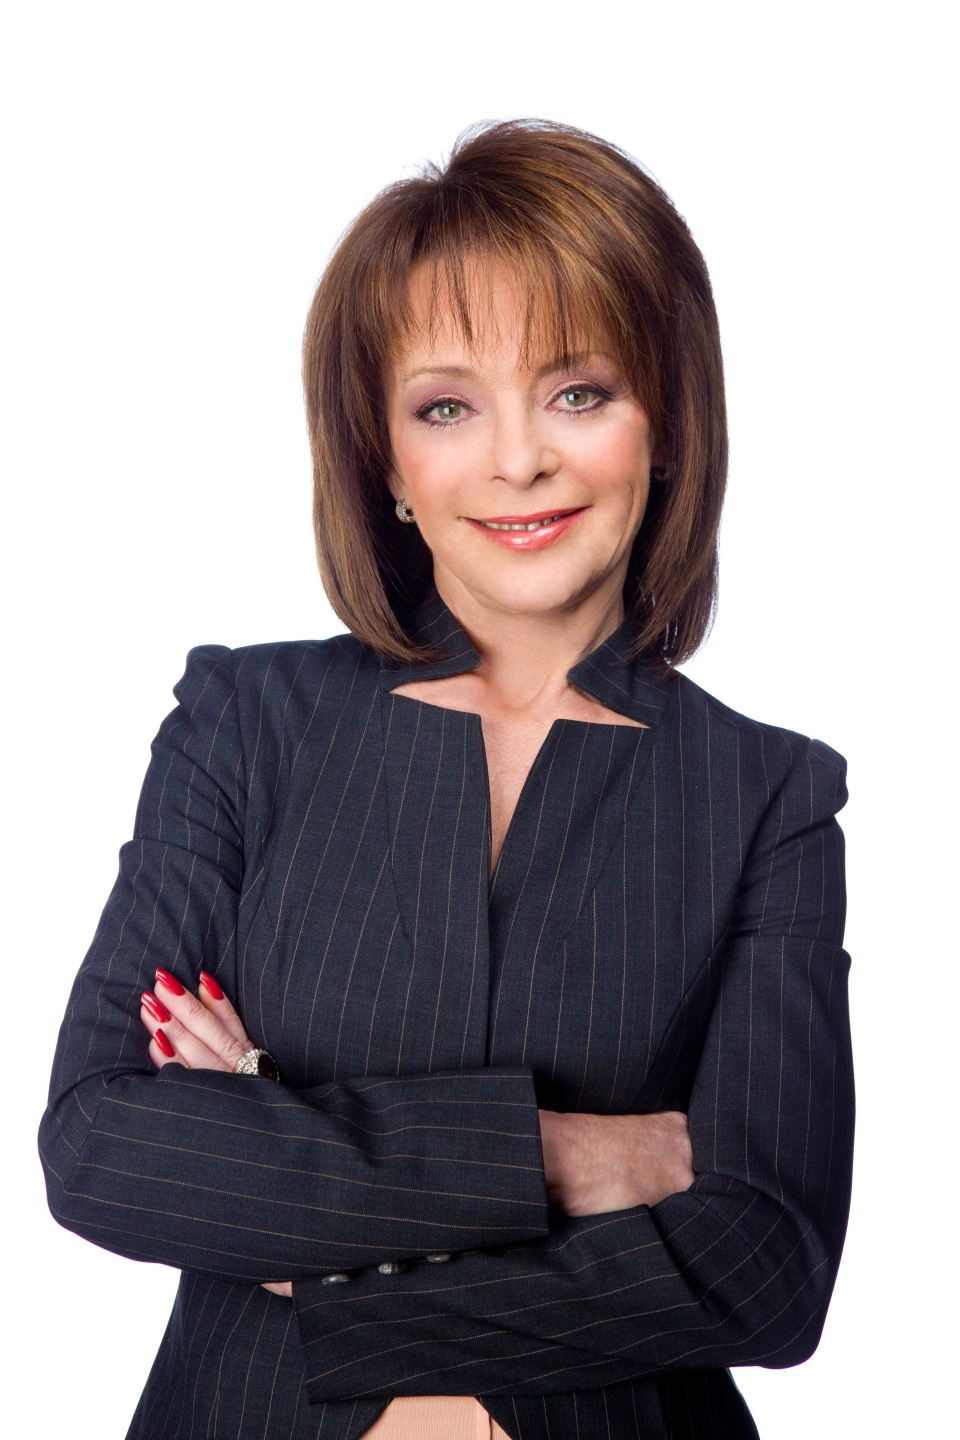 Christine Bentley moving on from anchor desk: Share your ...